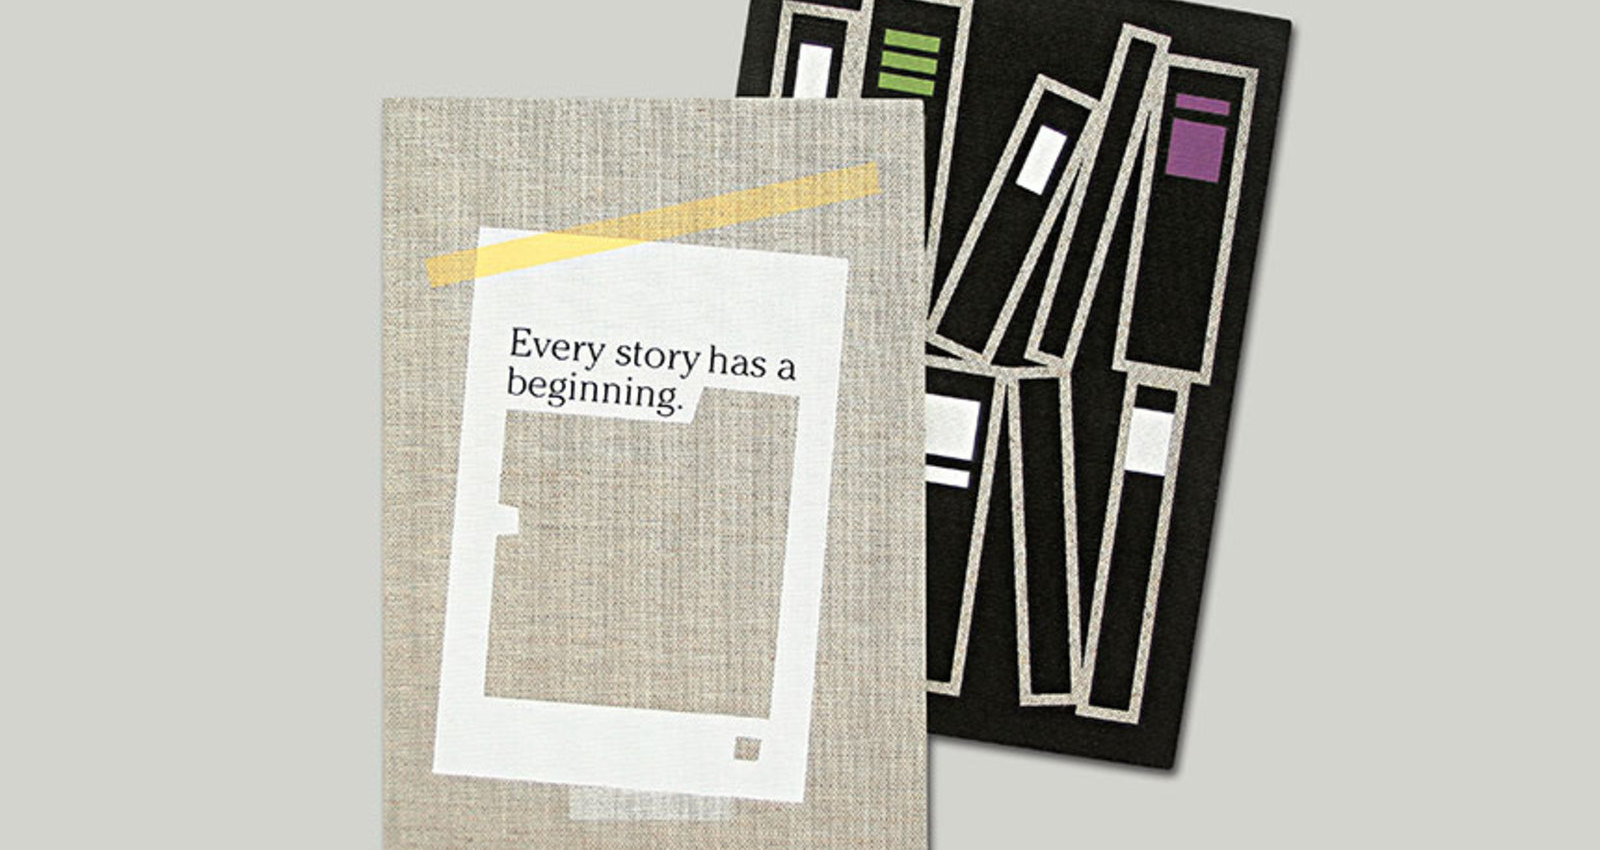 Every story has a beginning